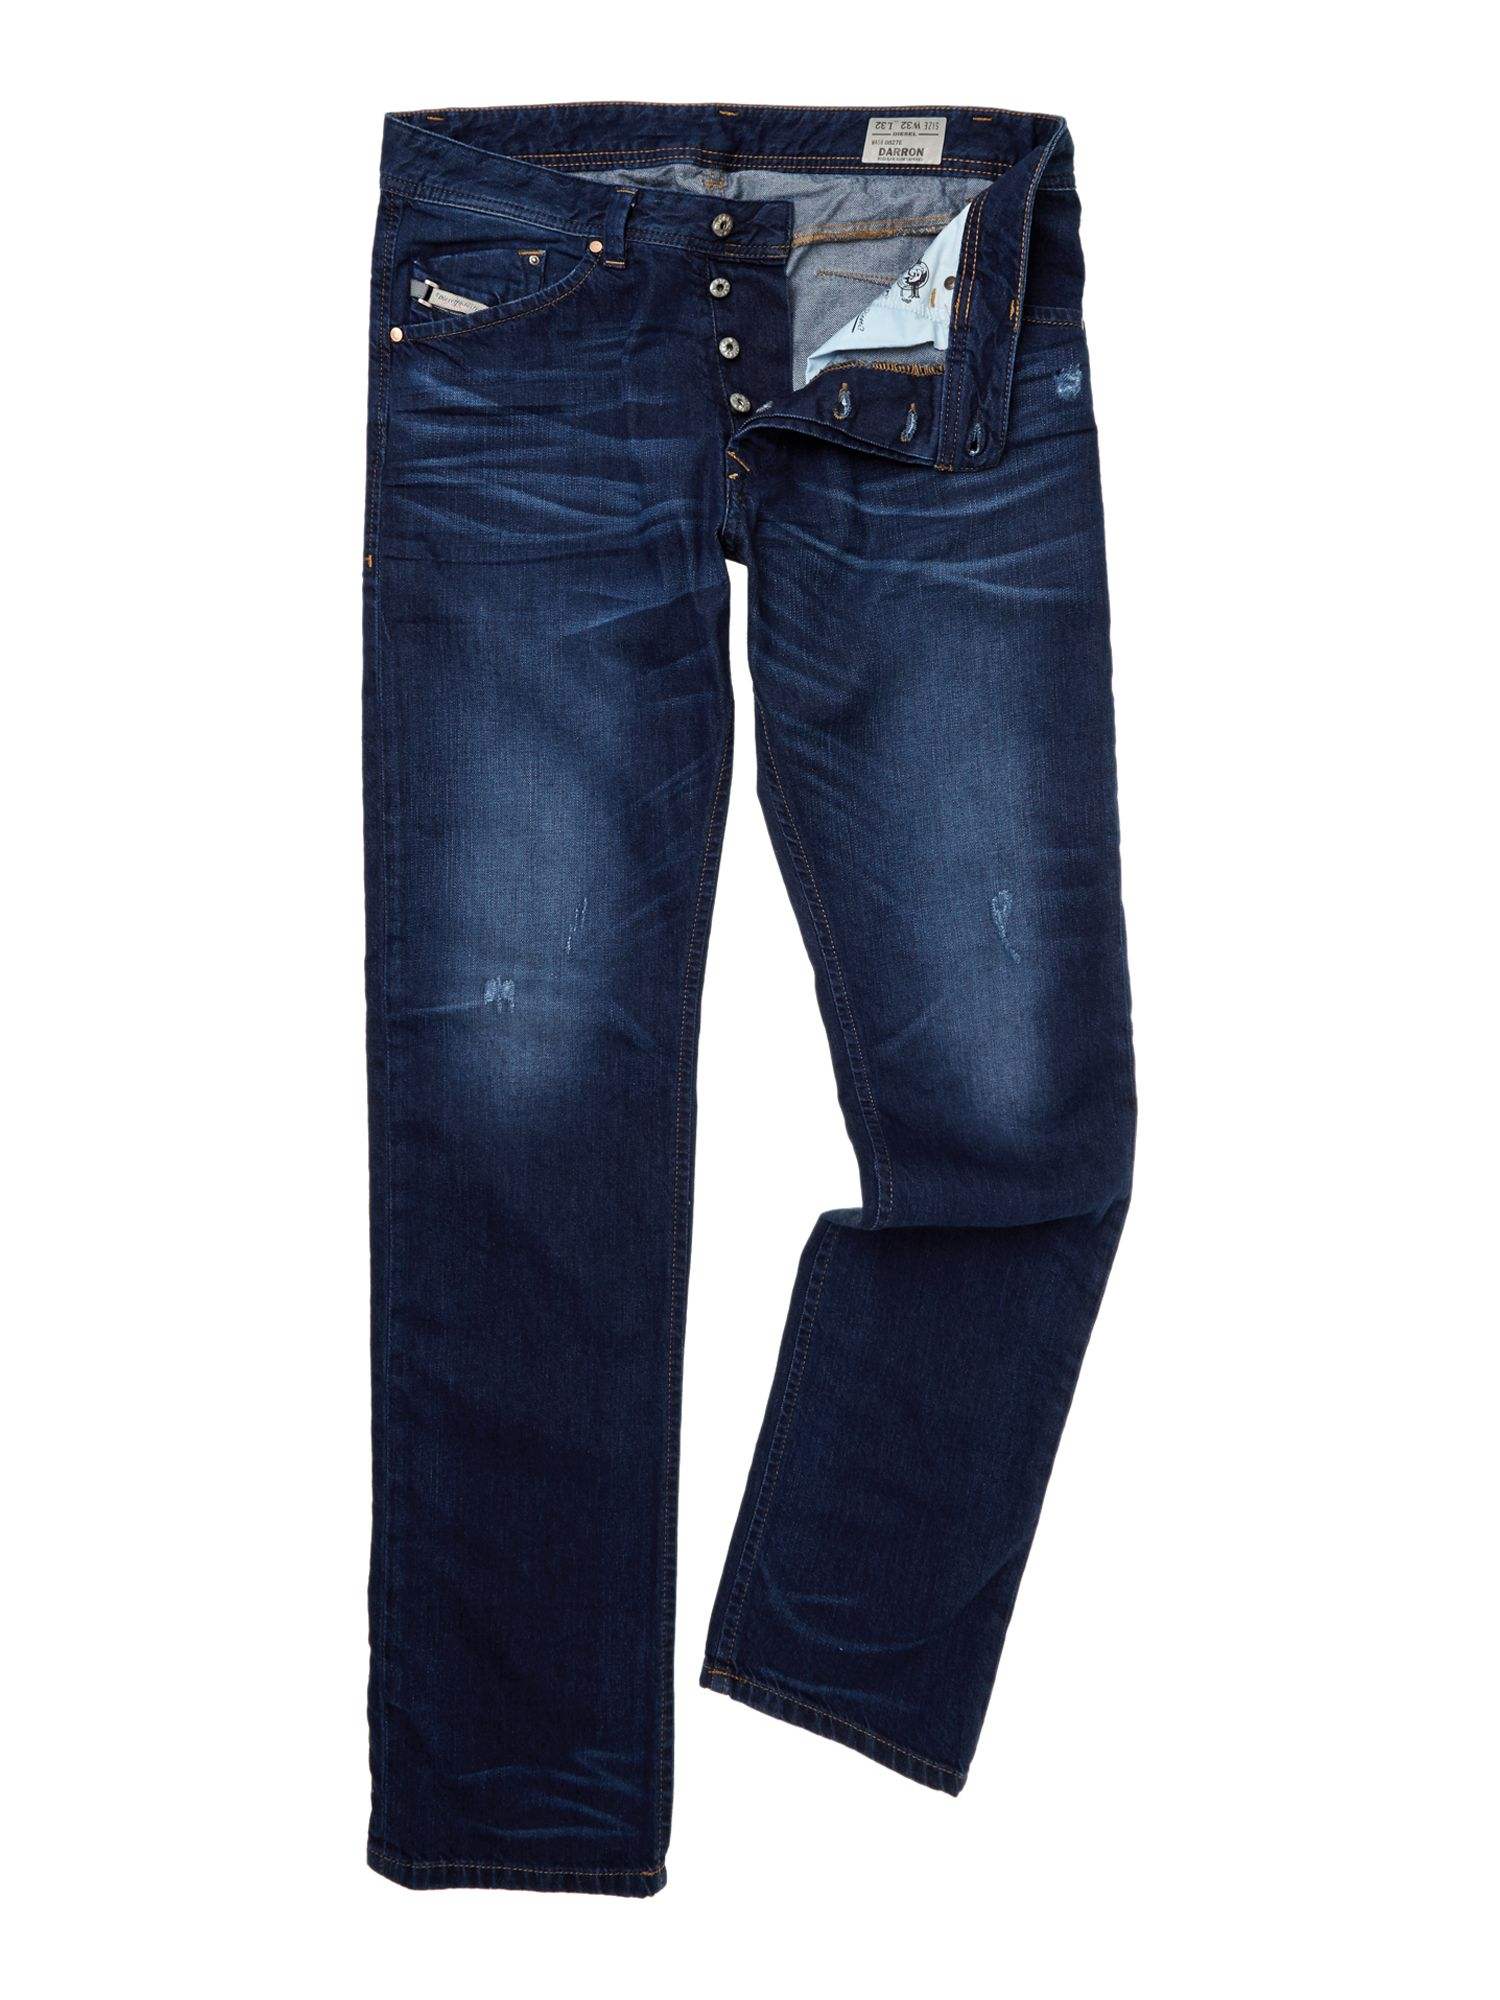 Darron 0827e tapered fit jean